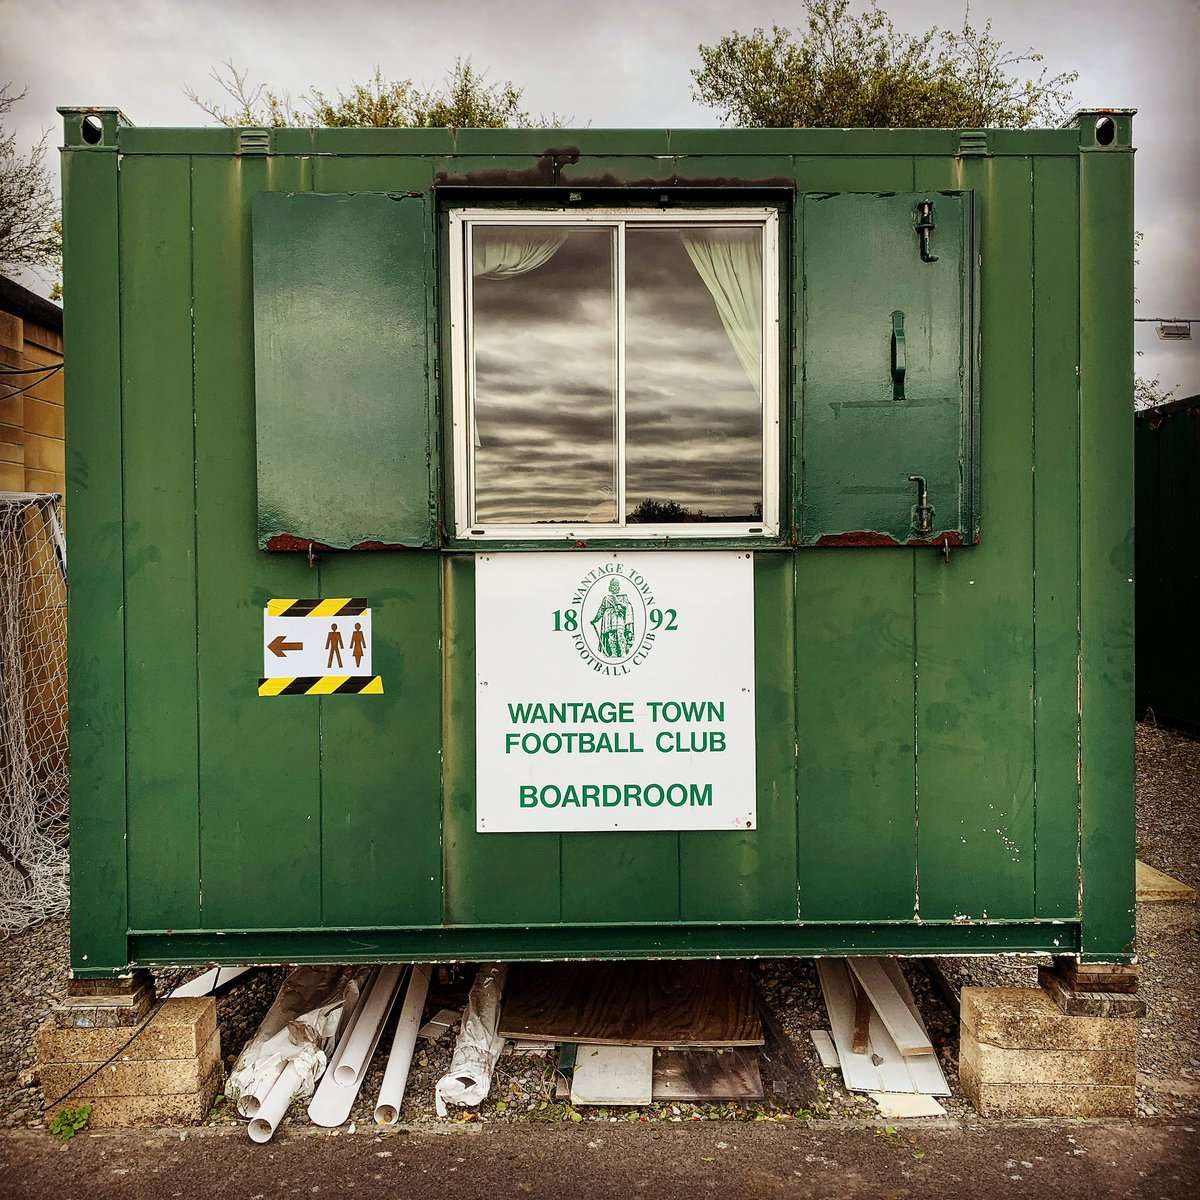 Step 4 action yesterday. Highest level since lockdown for me. Just the two left in this division to do now.... @WantageTownFC 1 @bedworth_united 3 #groundhopping #nonleague #football https://t.co/2PvYNuvJ4C